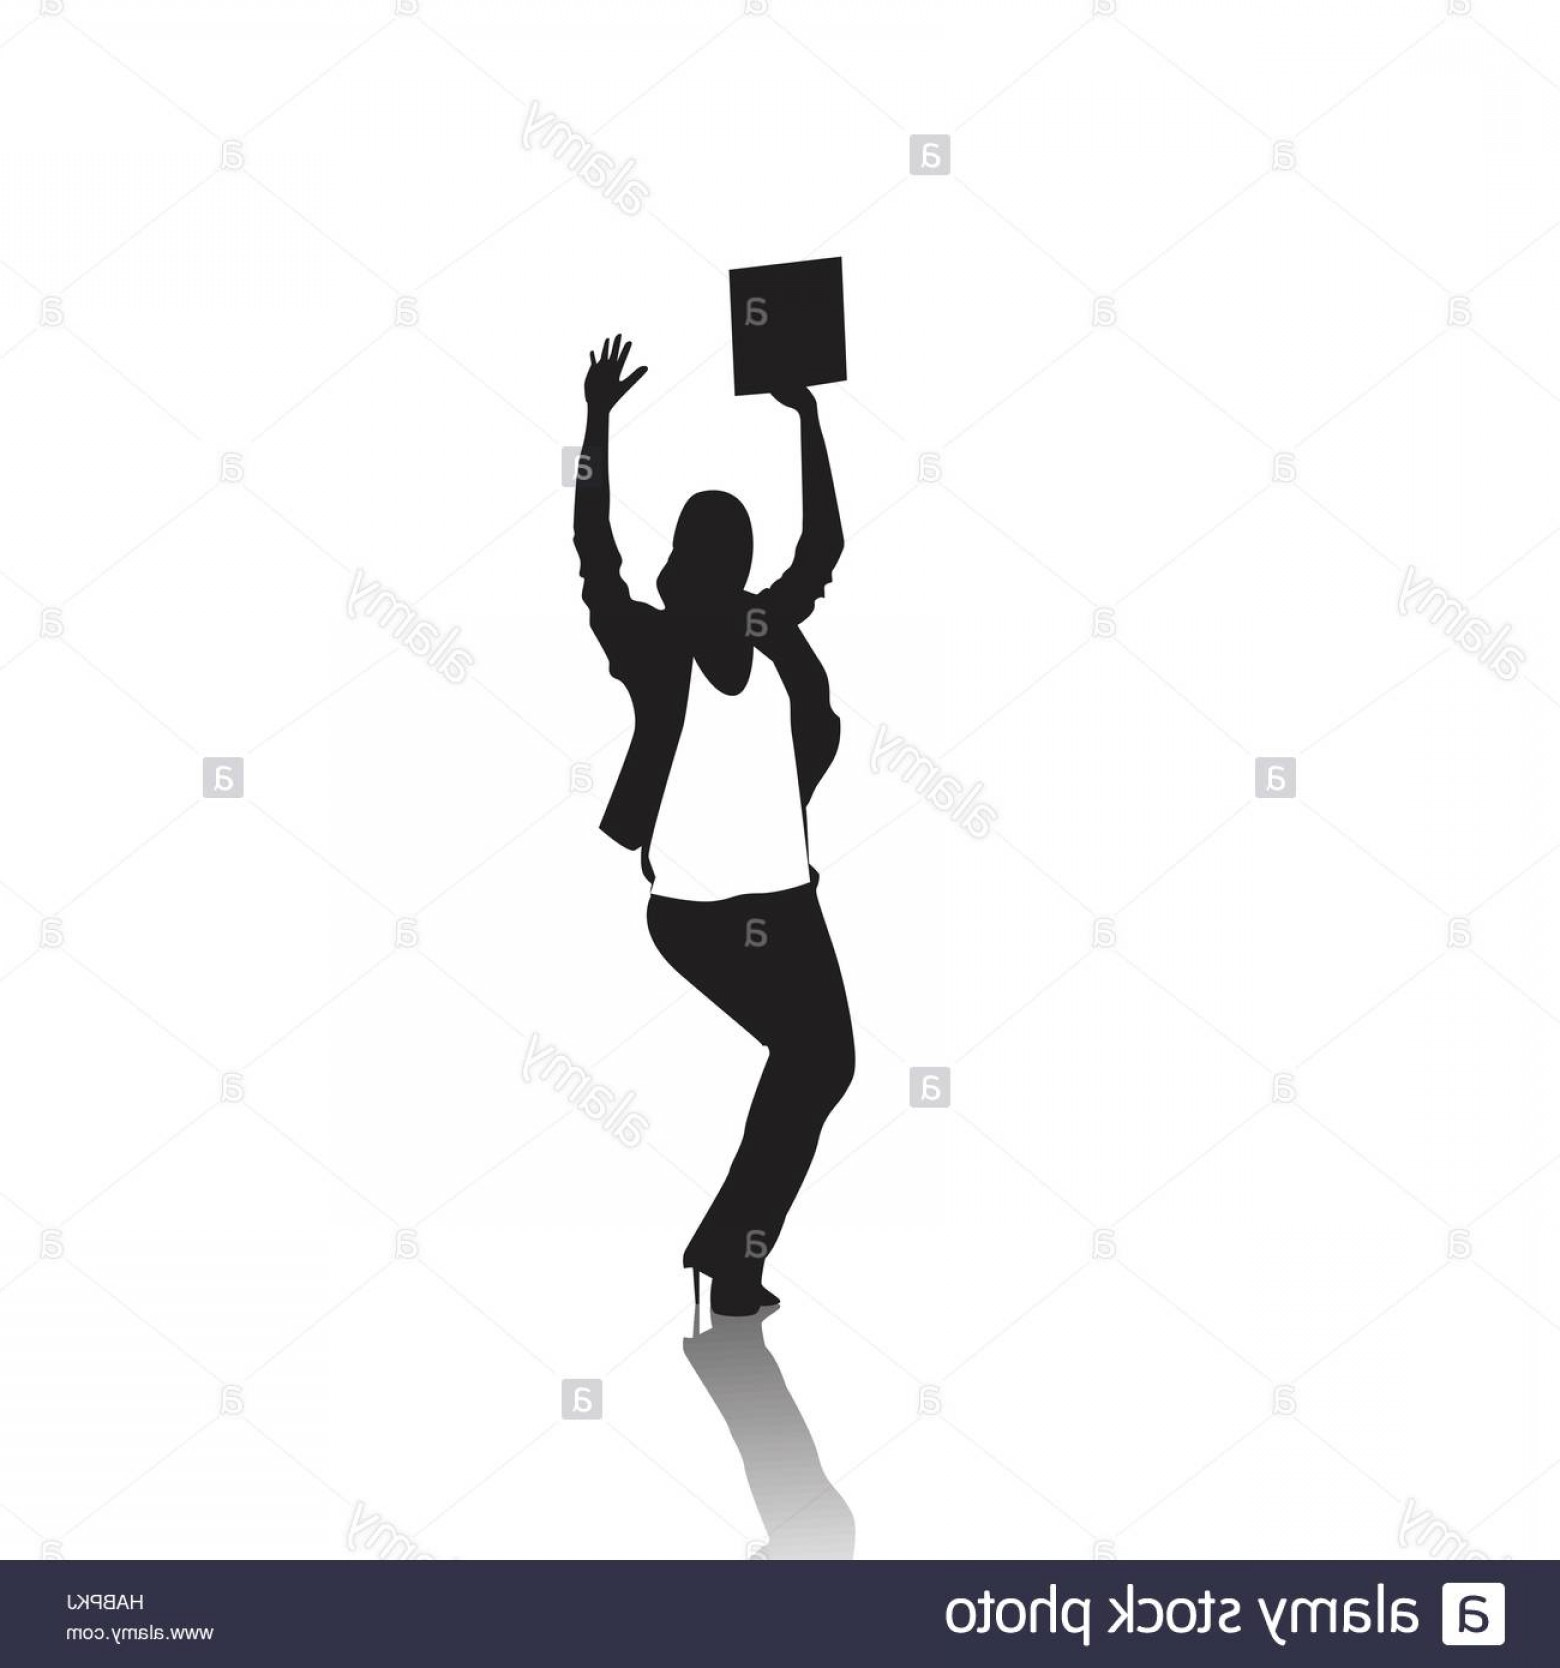 Holding Hands Up Silhouette Vector: Stock Photo Business Woman Silhouette Excited Hold Hands Up Raised Arms Businesswoman